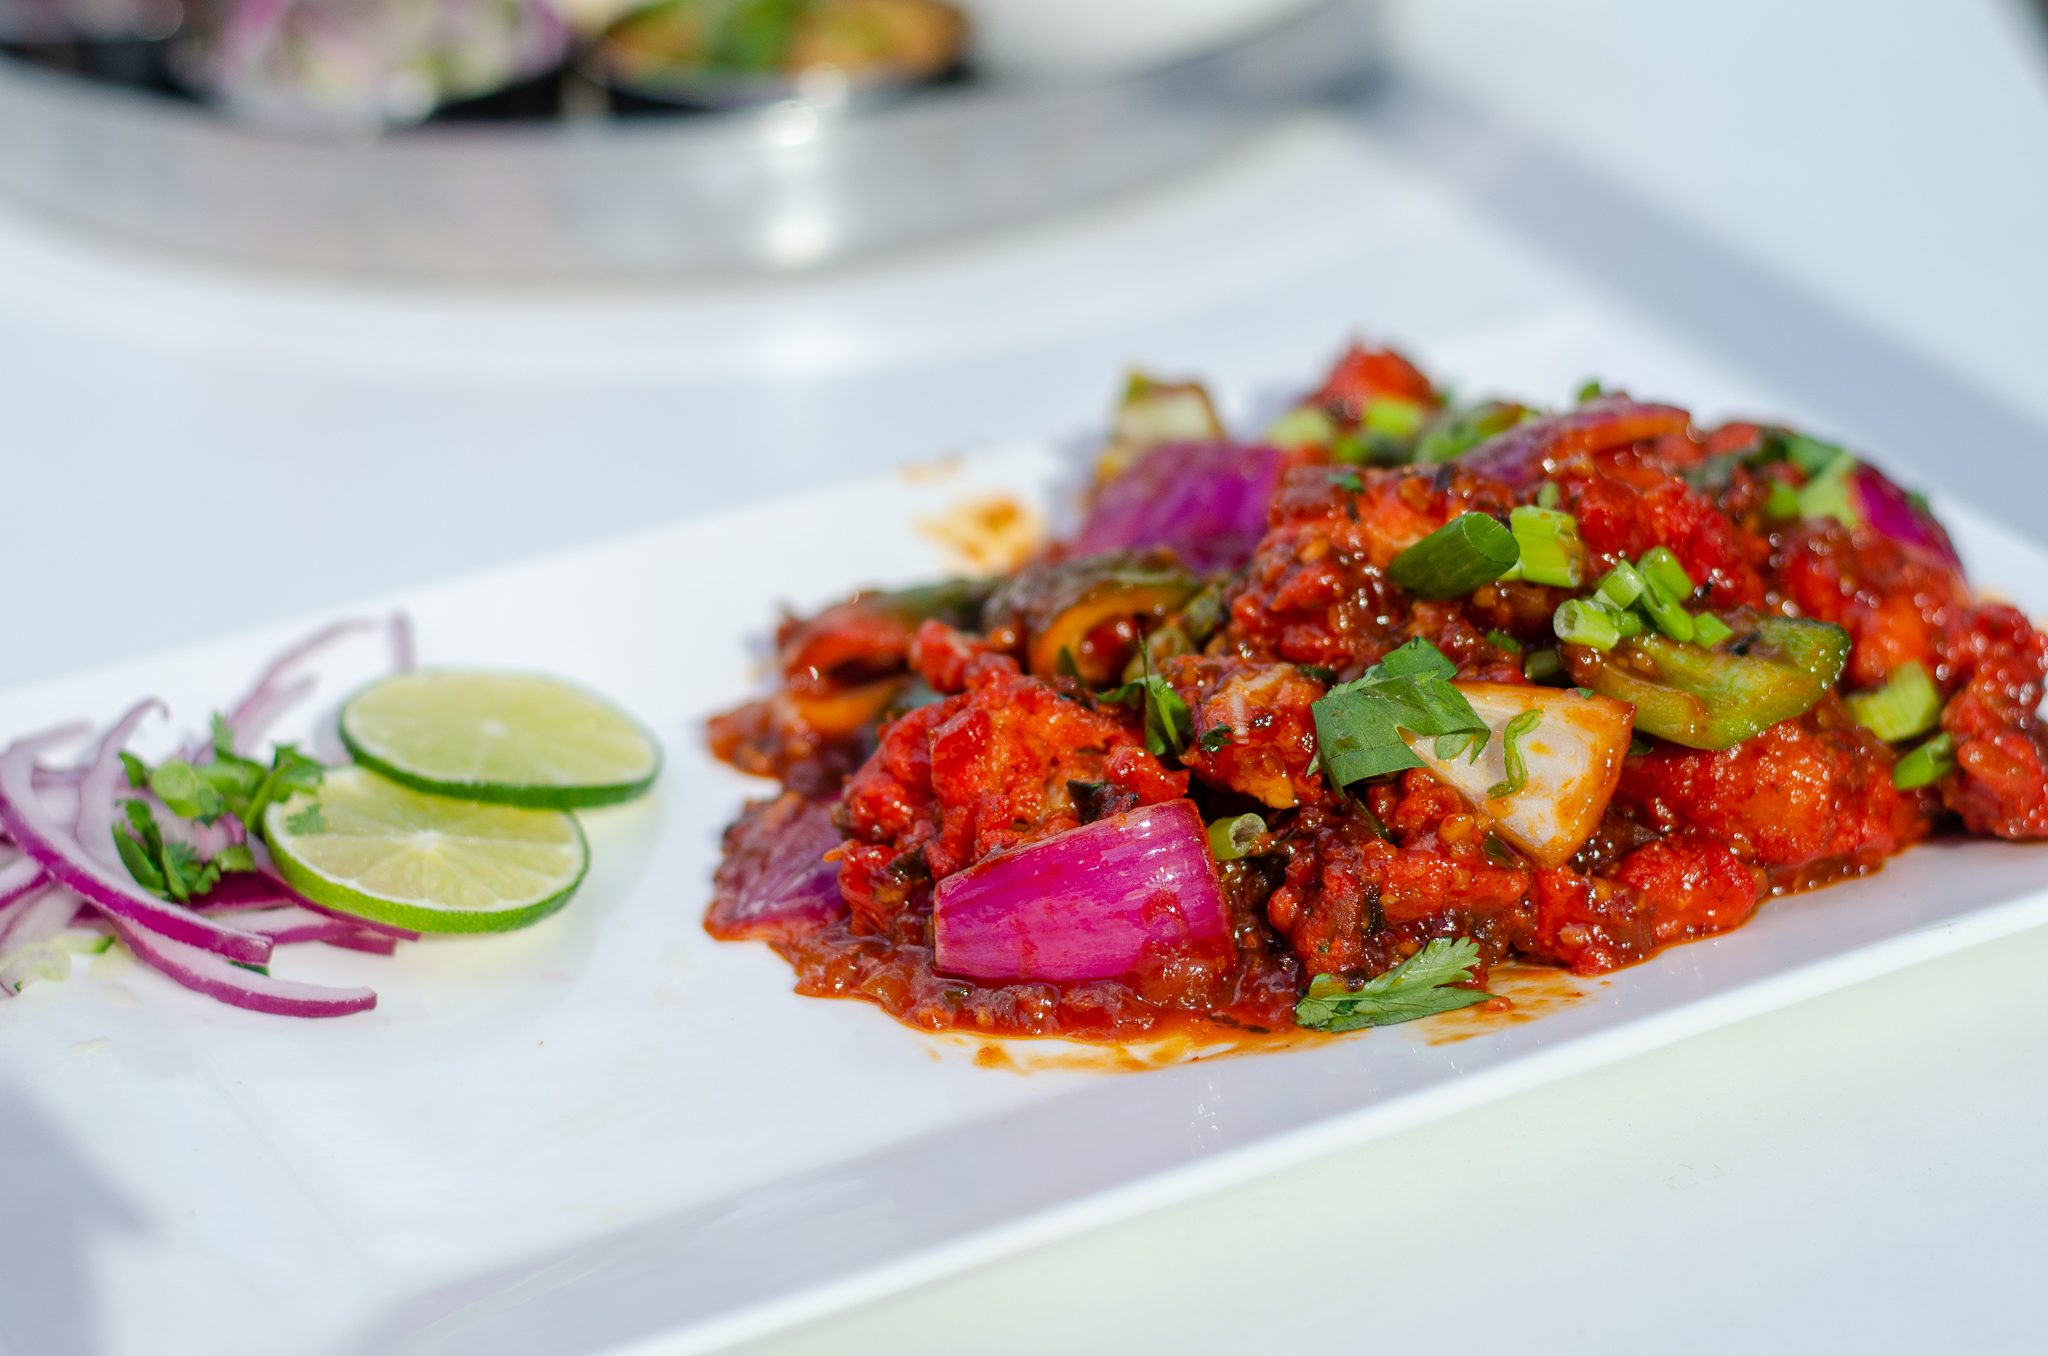 Chilli Fish from India Paradise in Windsor, Ontario.